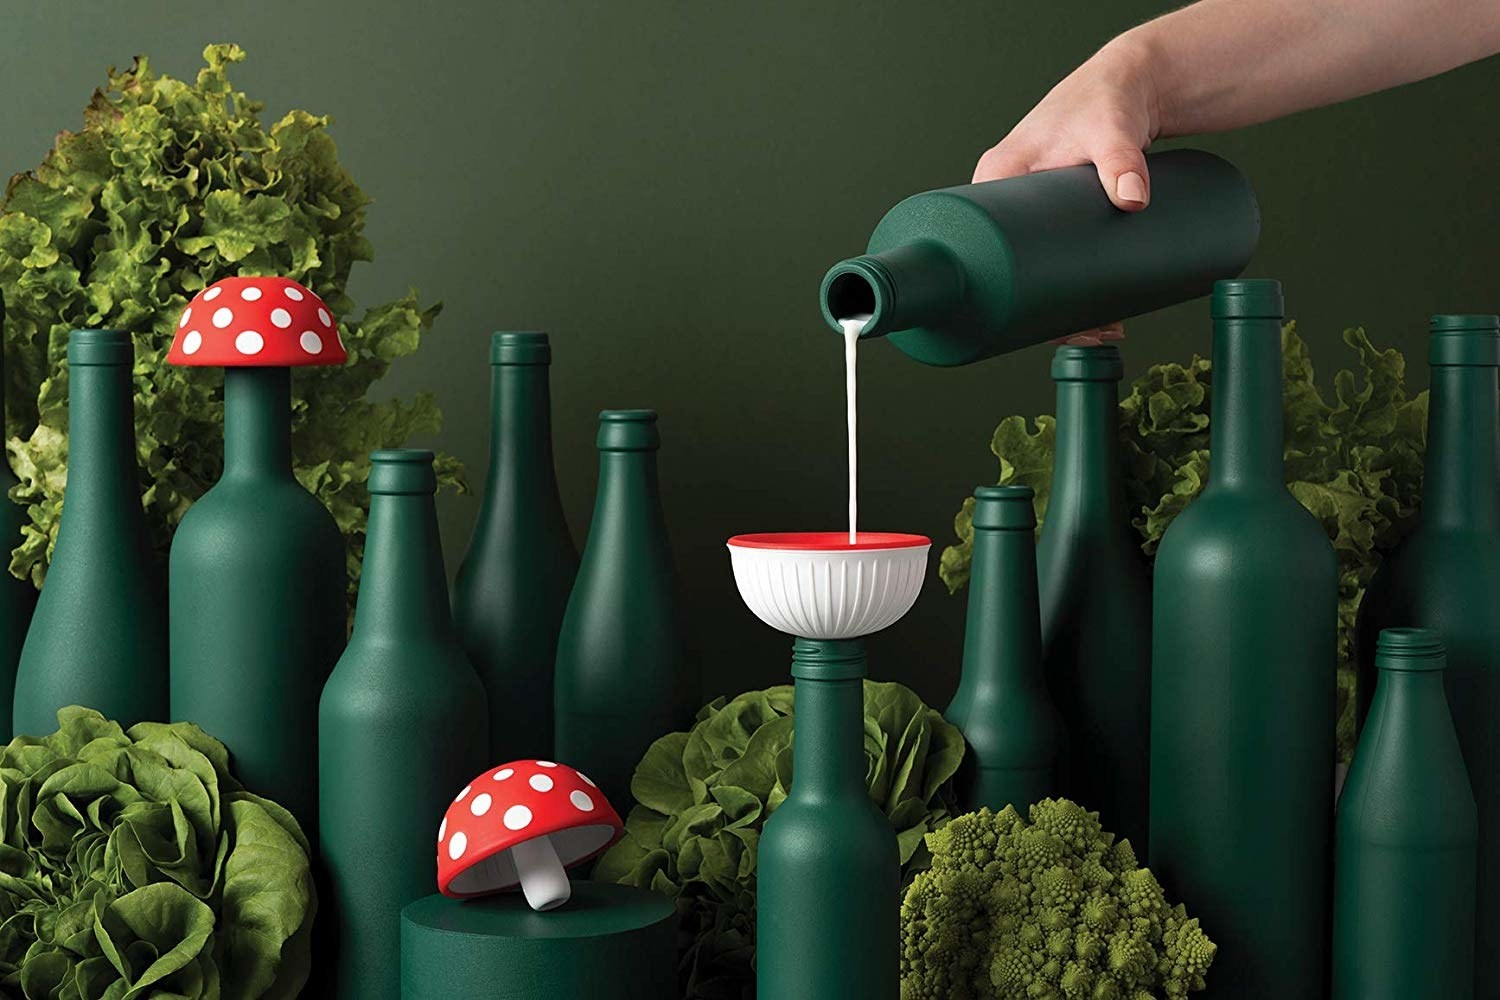 hand pouring a liquid from one bottle to another through the bowl-shaped mushroom funnel